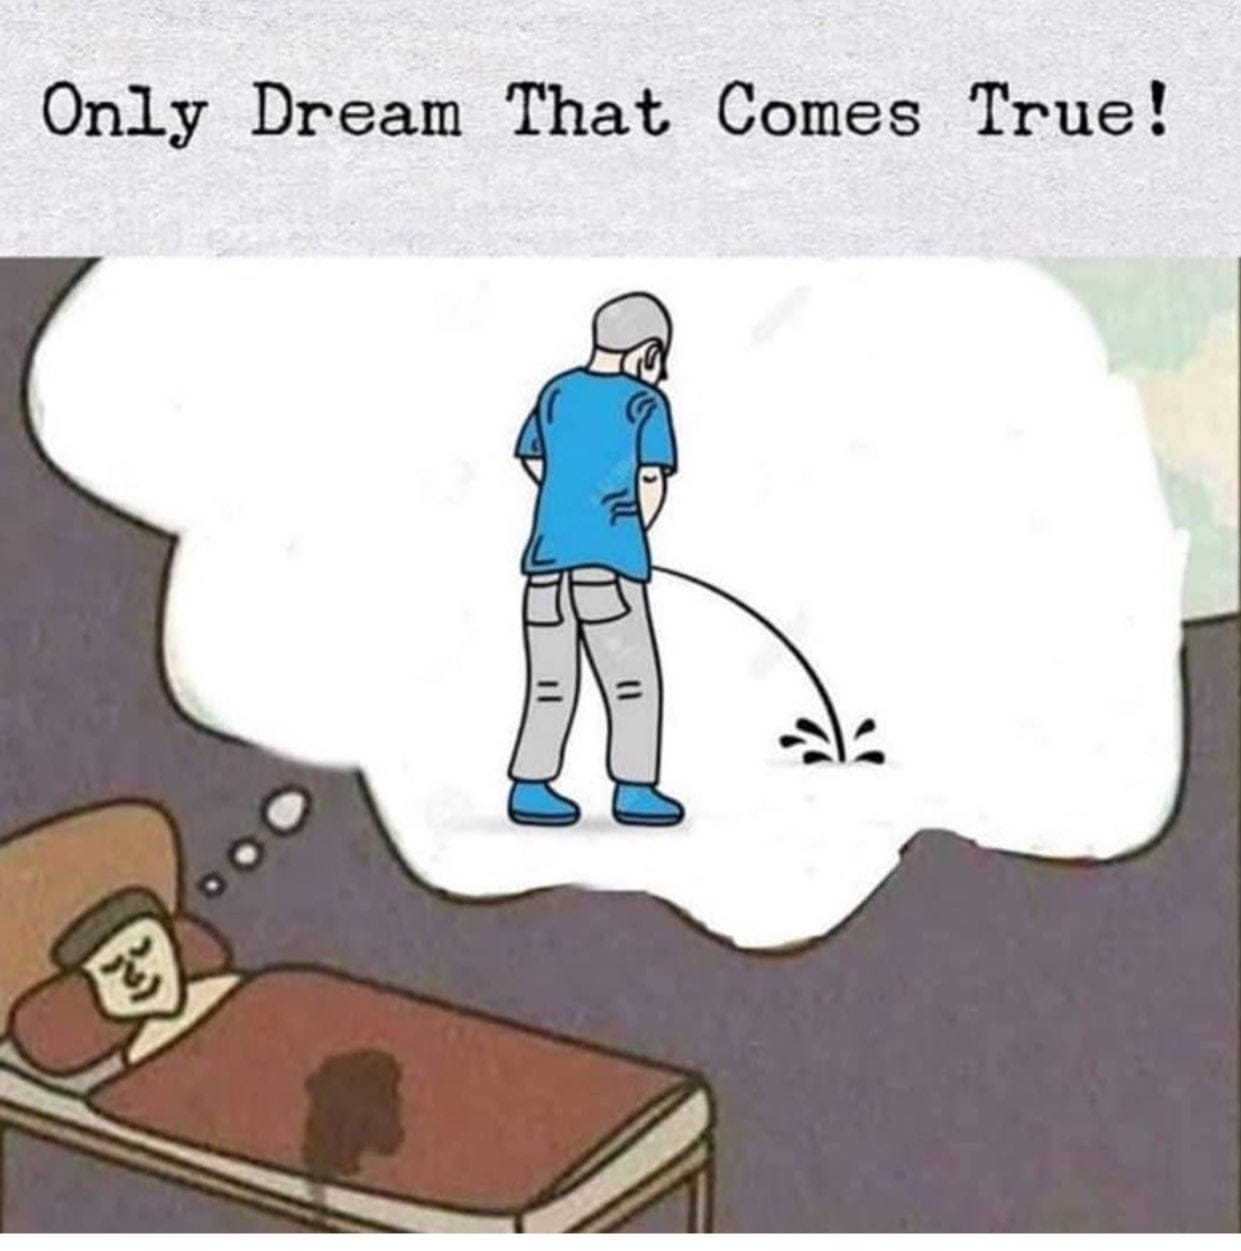 Only dream that comes true